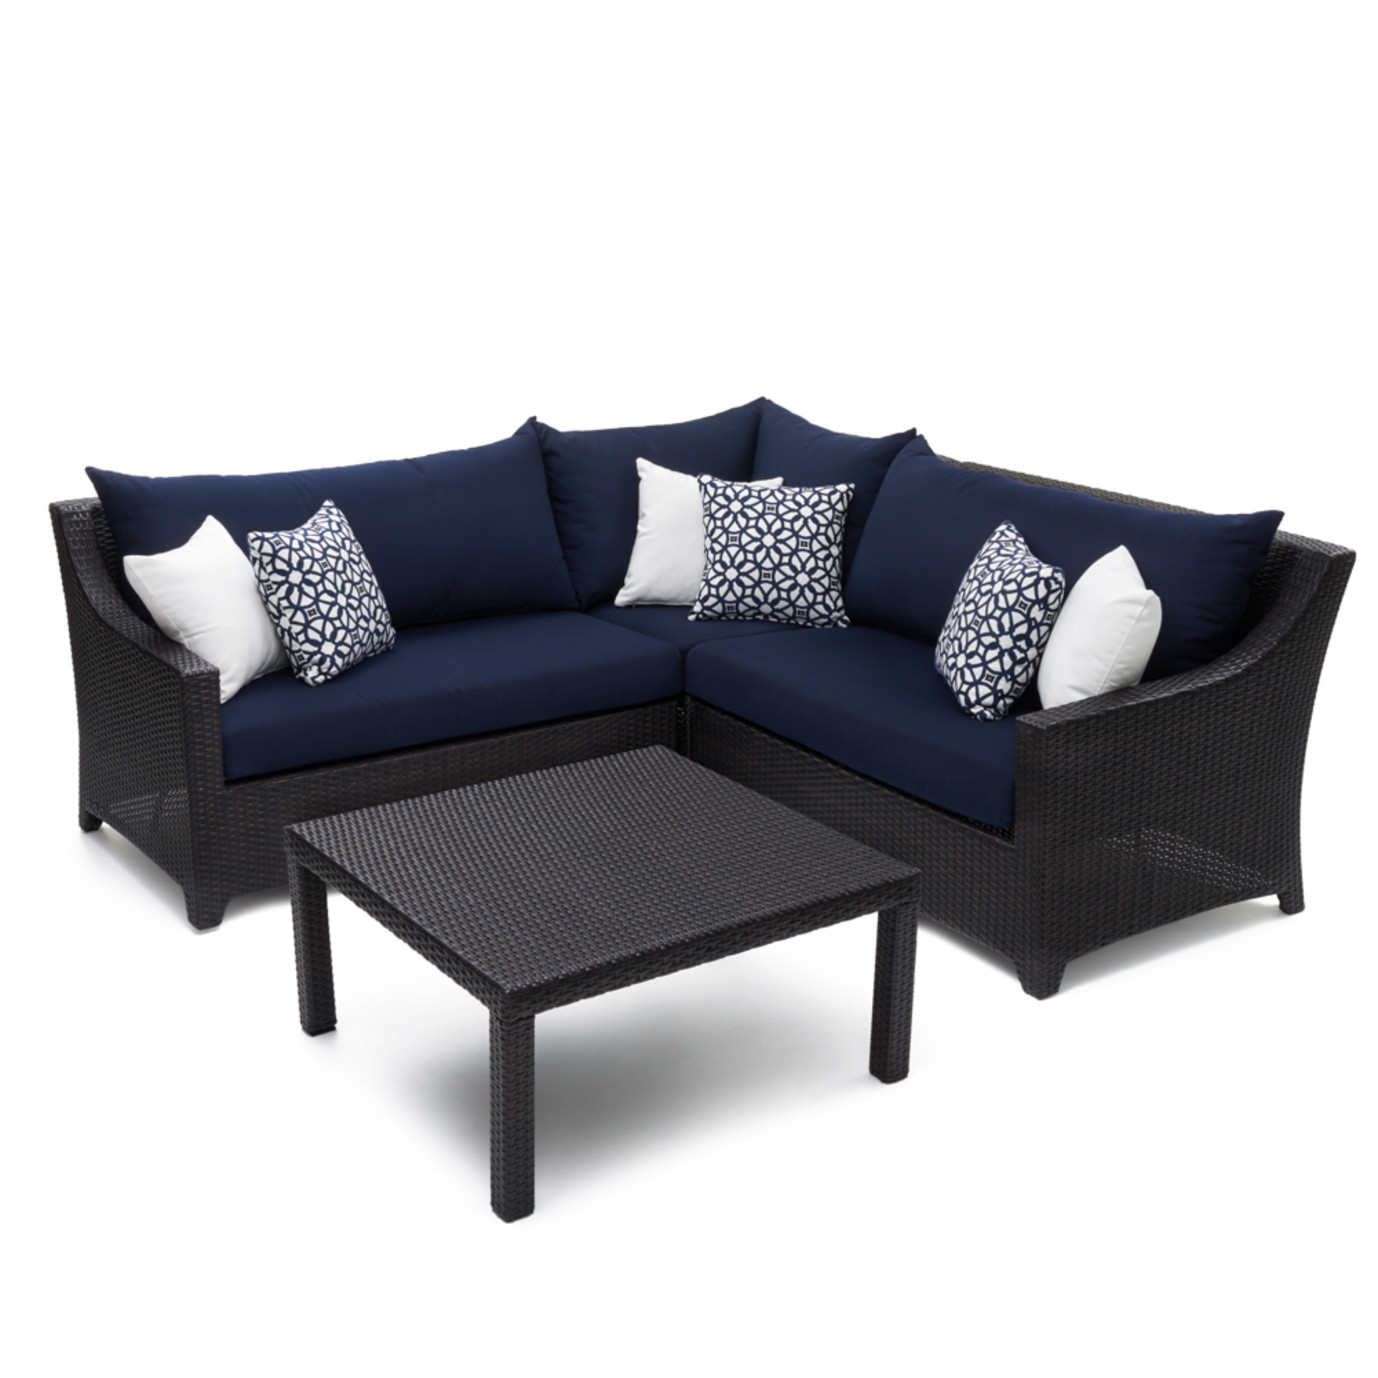 Deco™ 4 Piece Sectional and Table